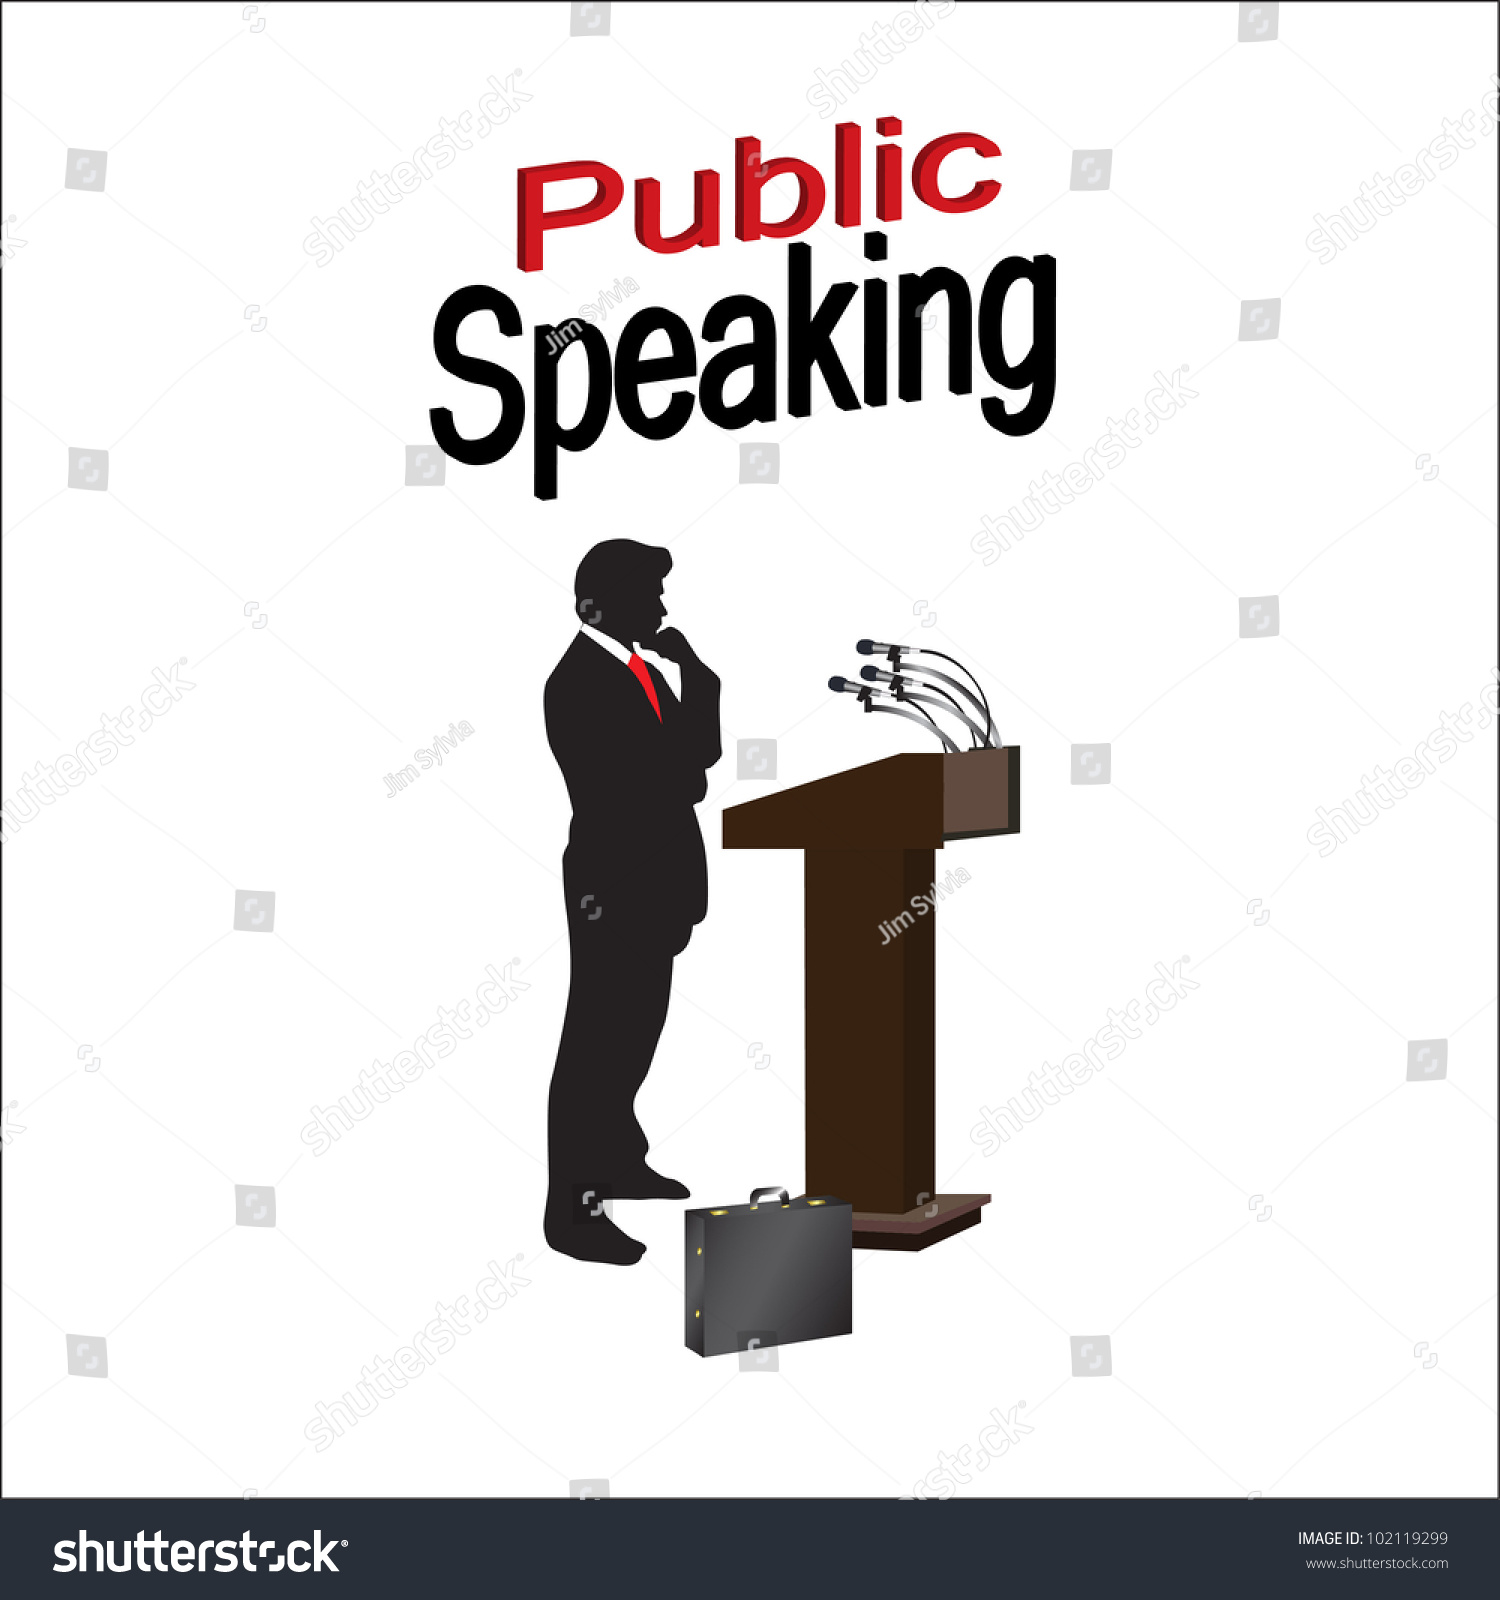 public speaking on save our earth Public speaking tips & speech topics  we should handle with care the dangers and risks of exhausting our fossil fuel resources on earth, and protect the innocent .